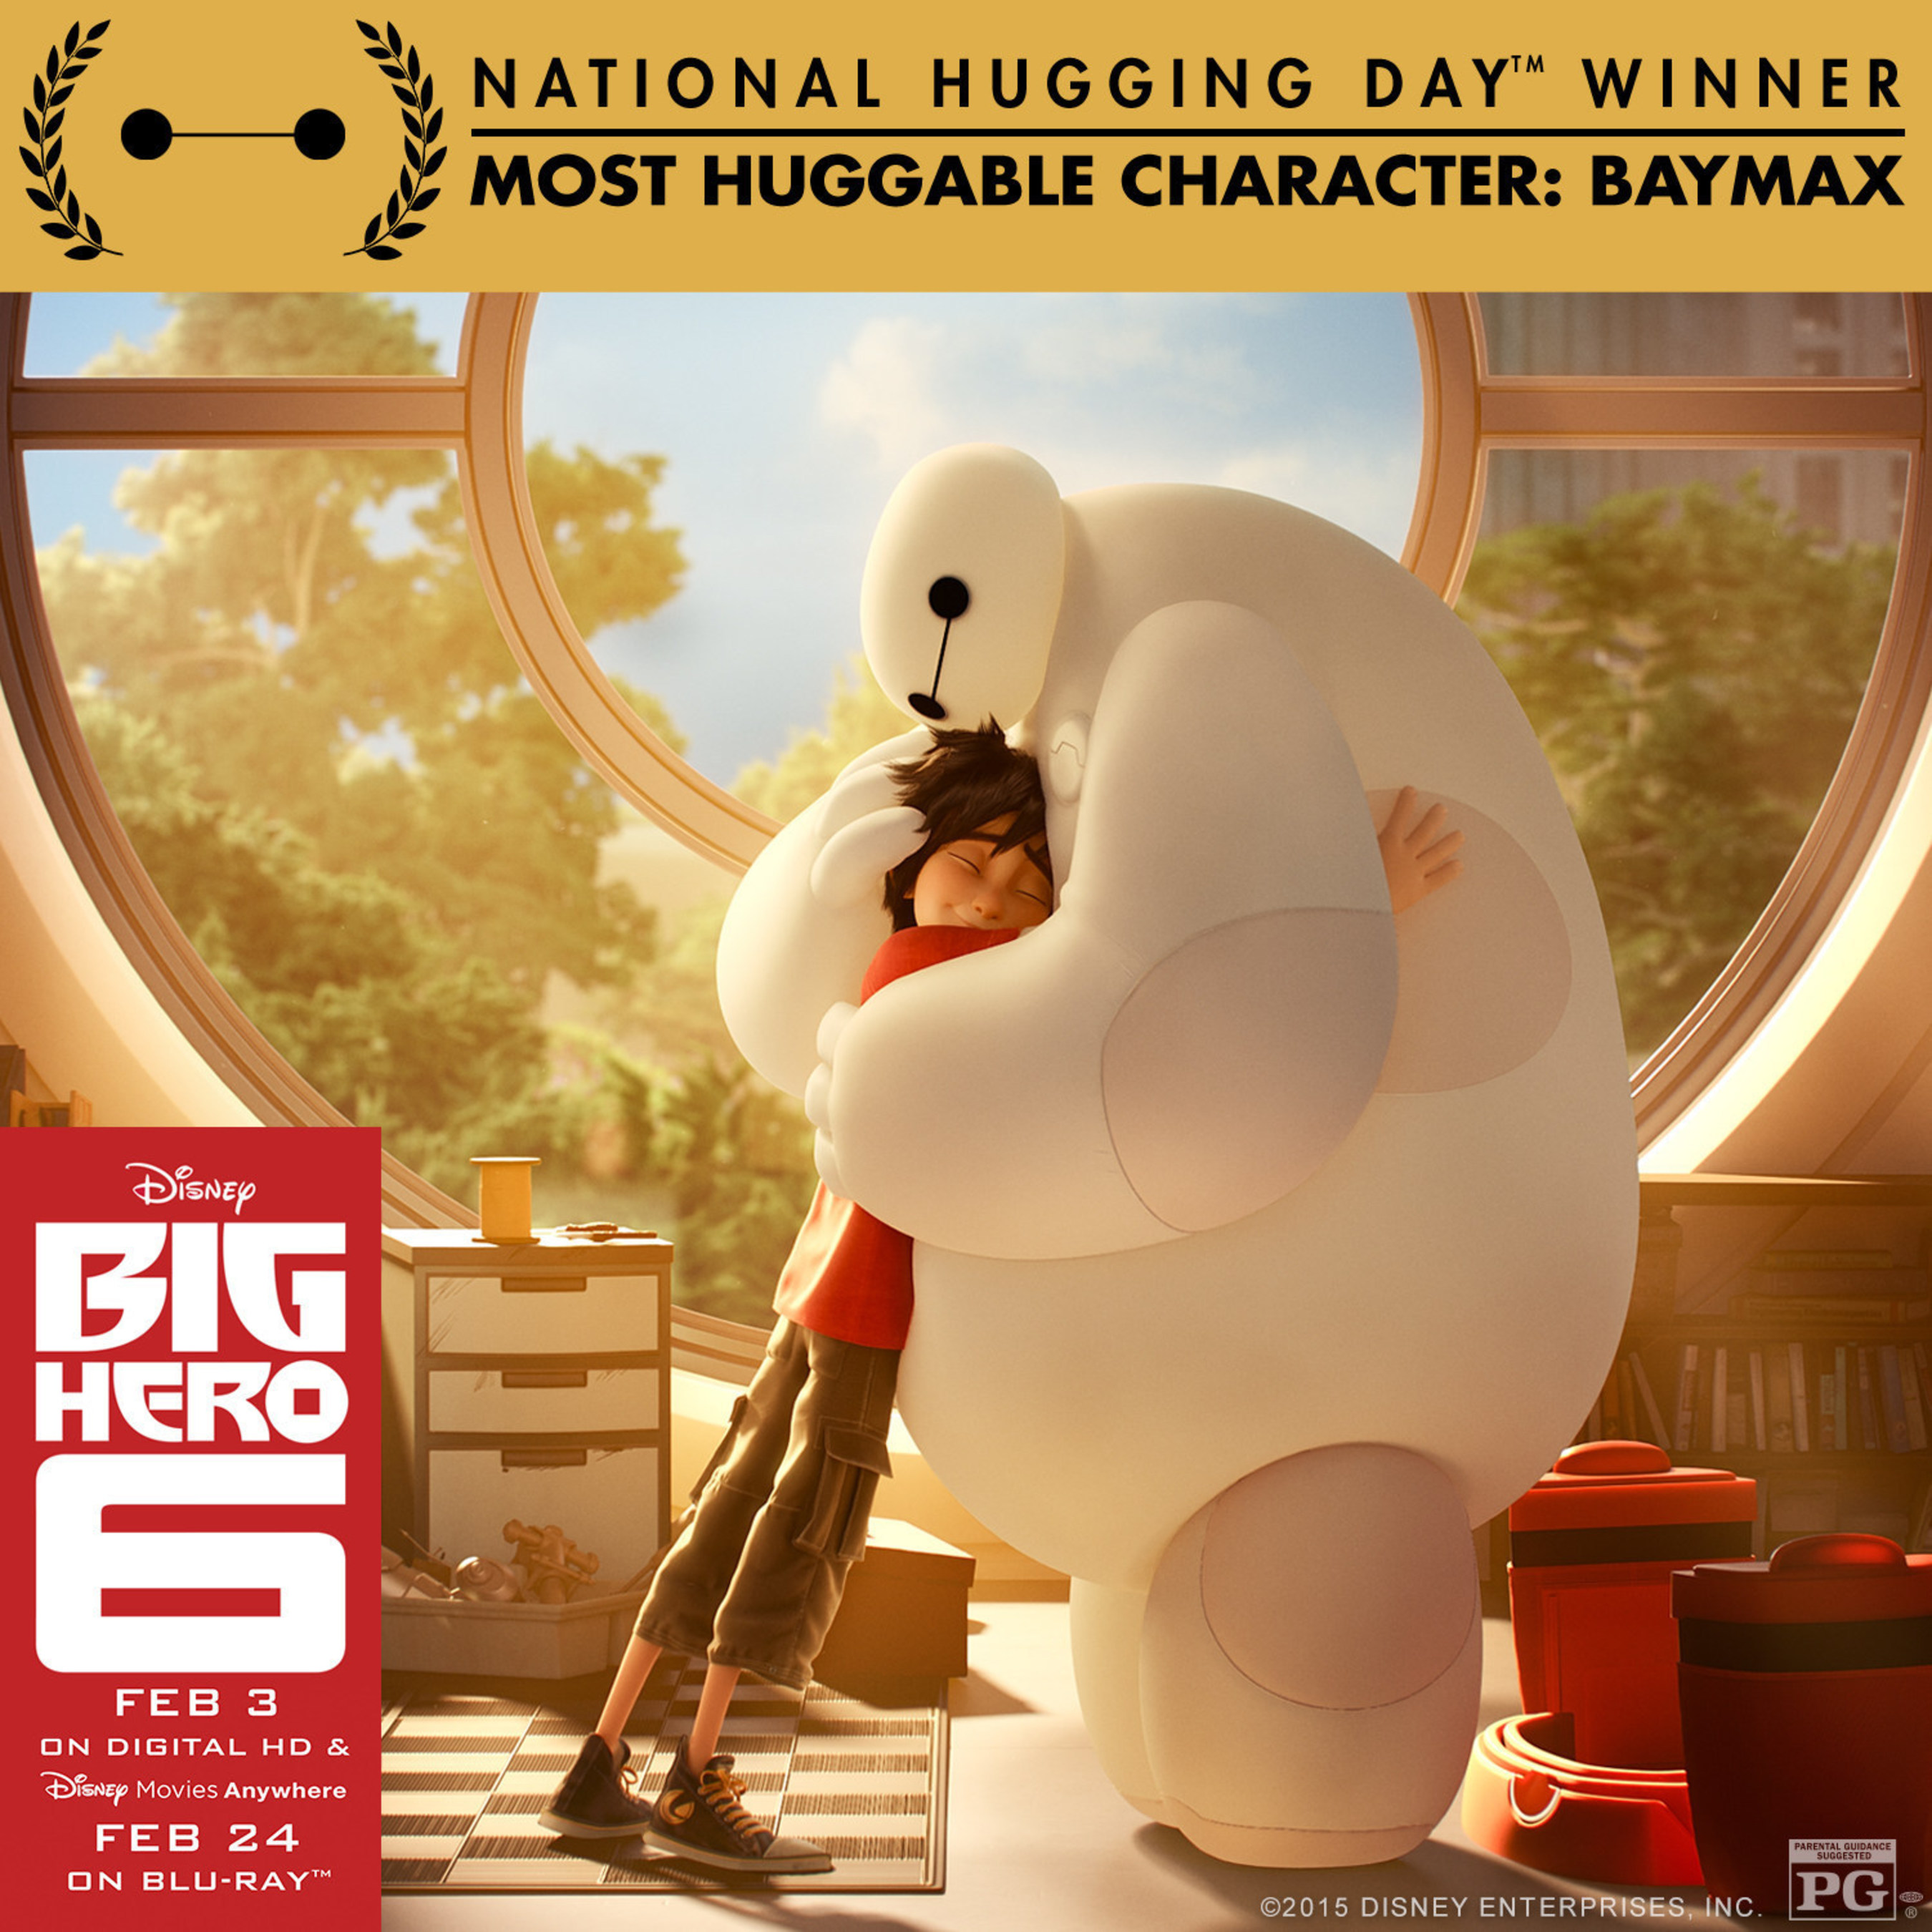 """Baymax, Star of Disney's """"Big Hero 6,"""" Named Most Huggable Character of 2015 on National Hugging Day(TM)! Available on Digital HD 2/3 and Blu-ray 2/24."""